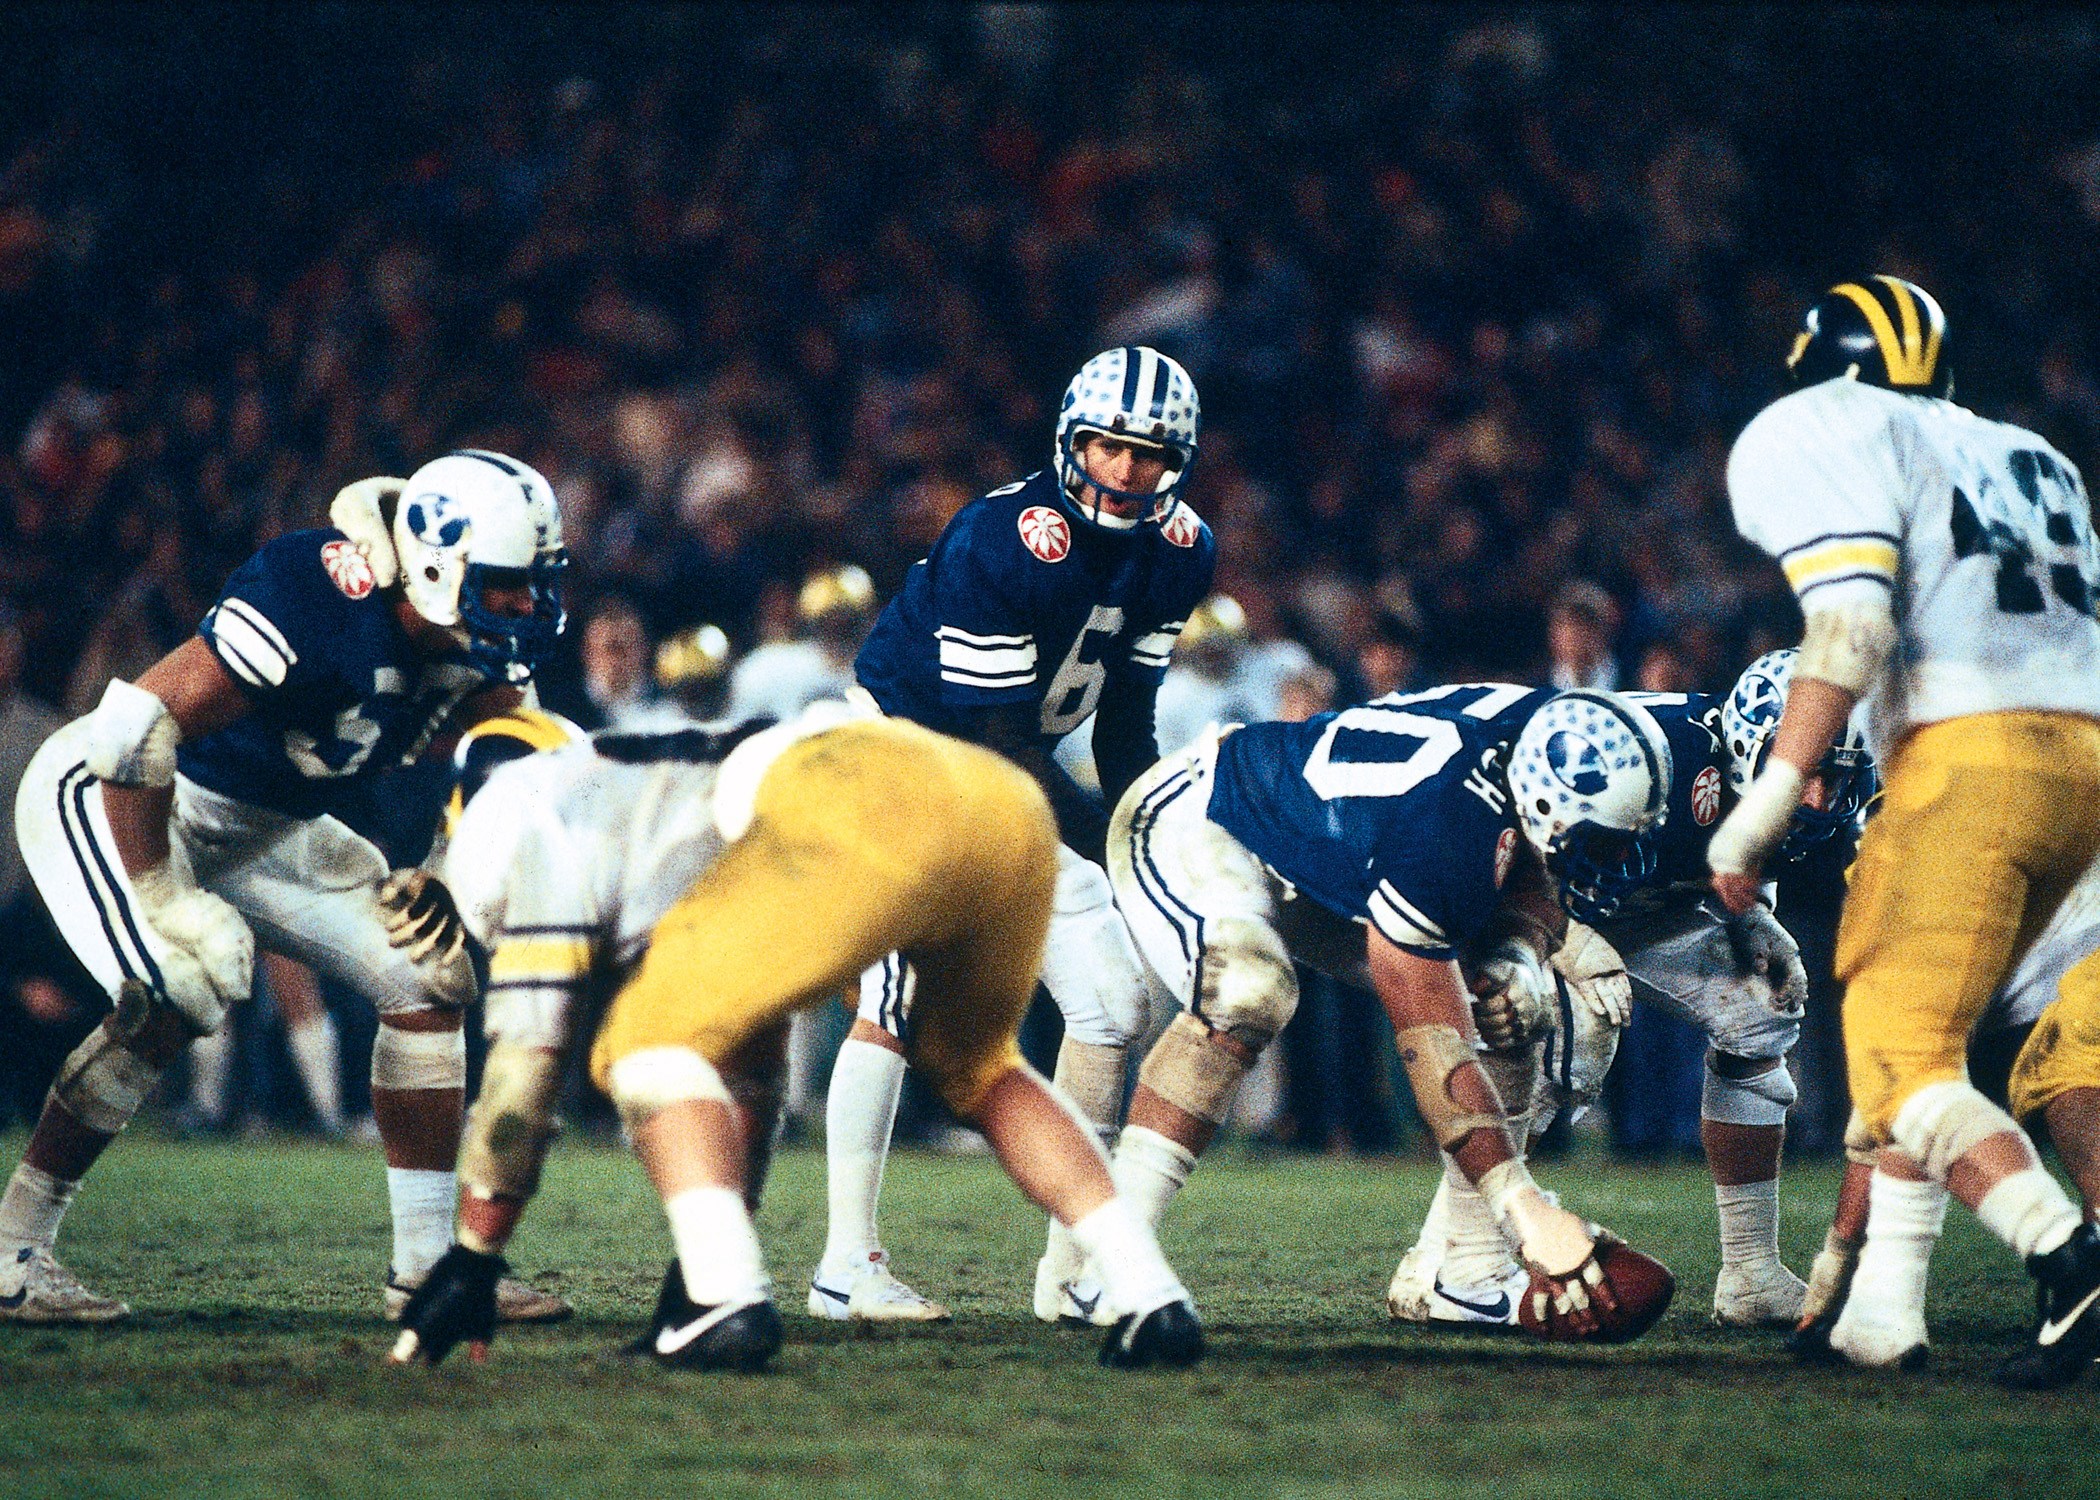 BYU quarterback Robbie Bosco prepares to take a snap during the 1984 Holiday Bowl vs. Michigan. The Cougars prevailed, 21-17.